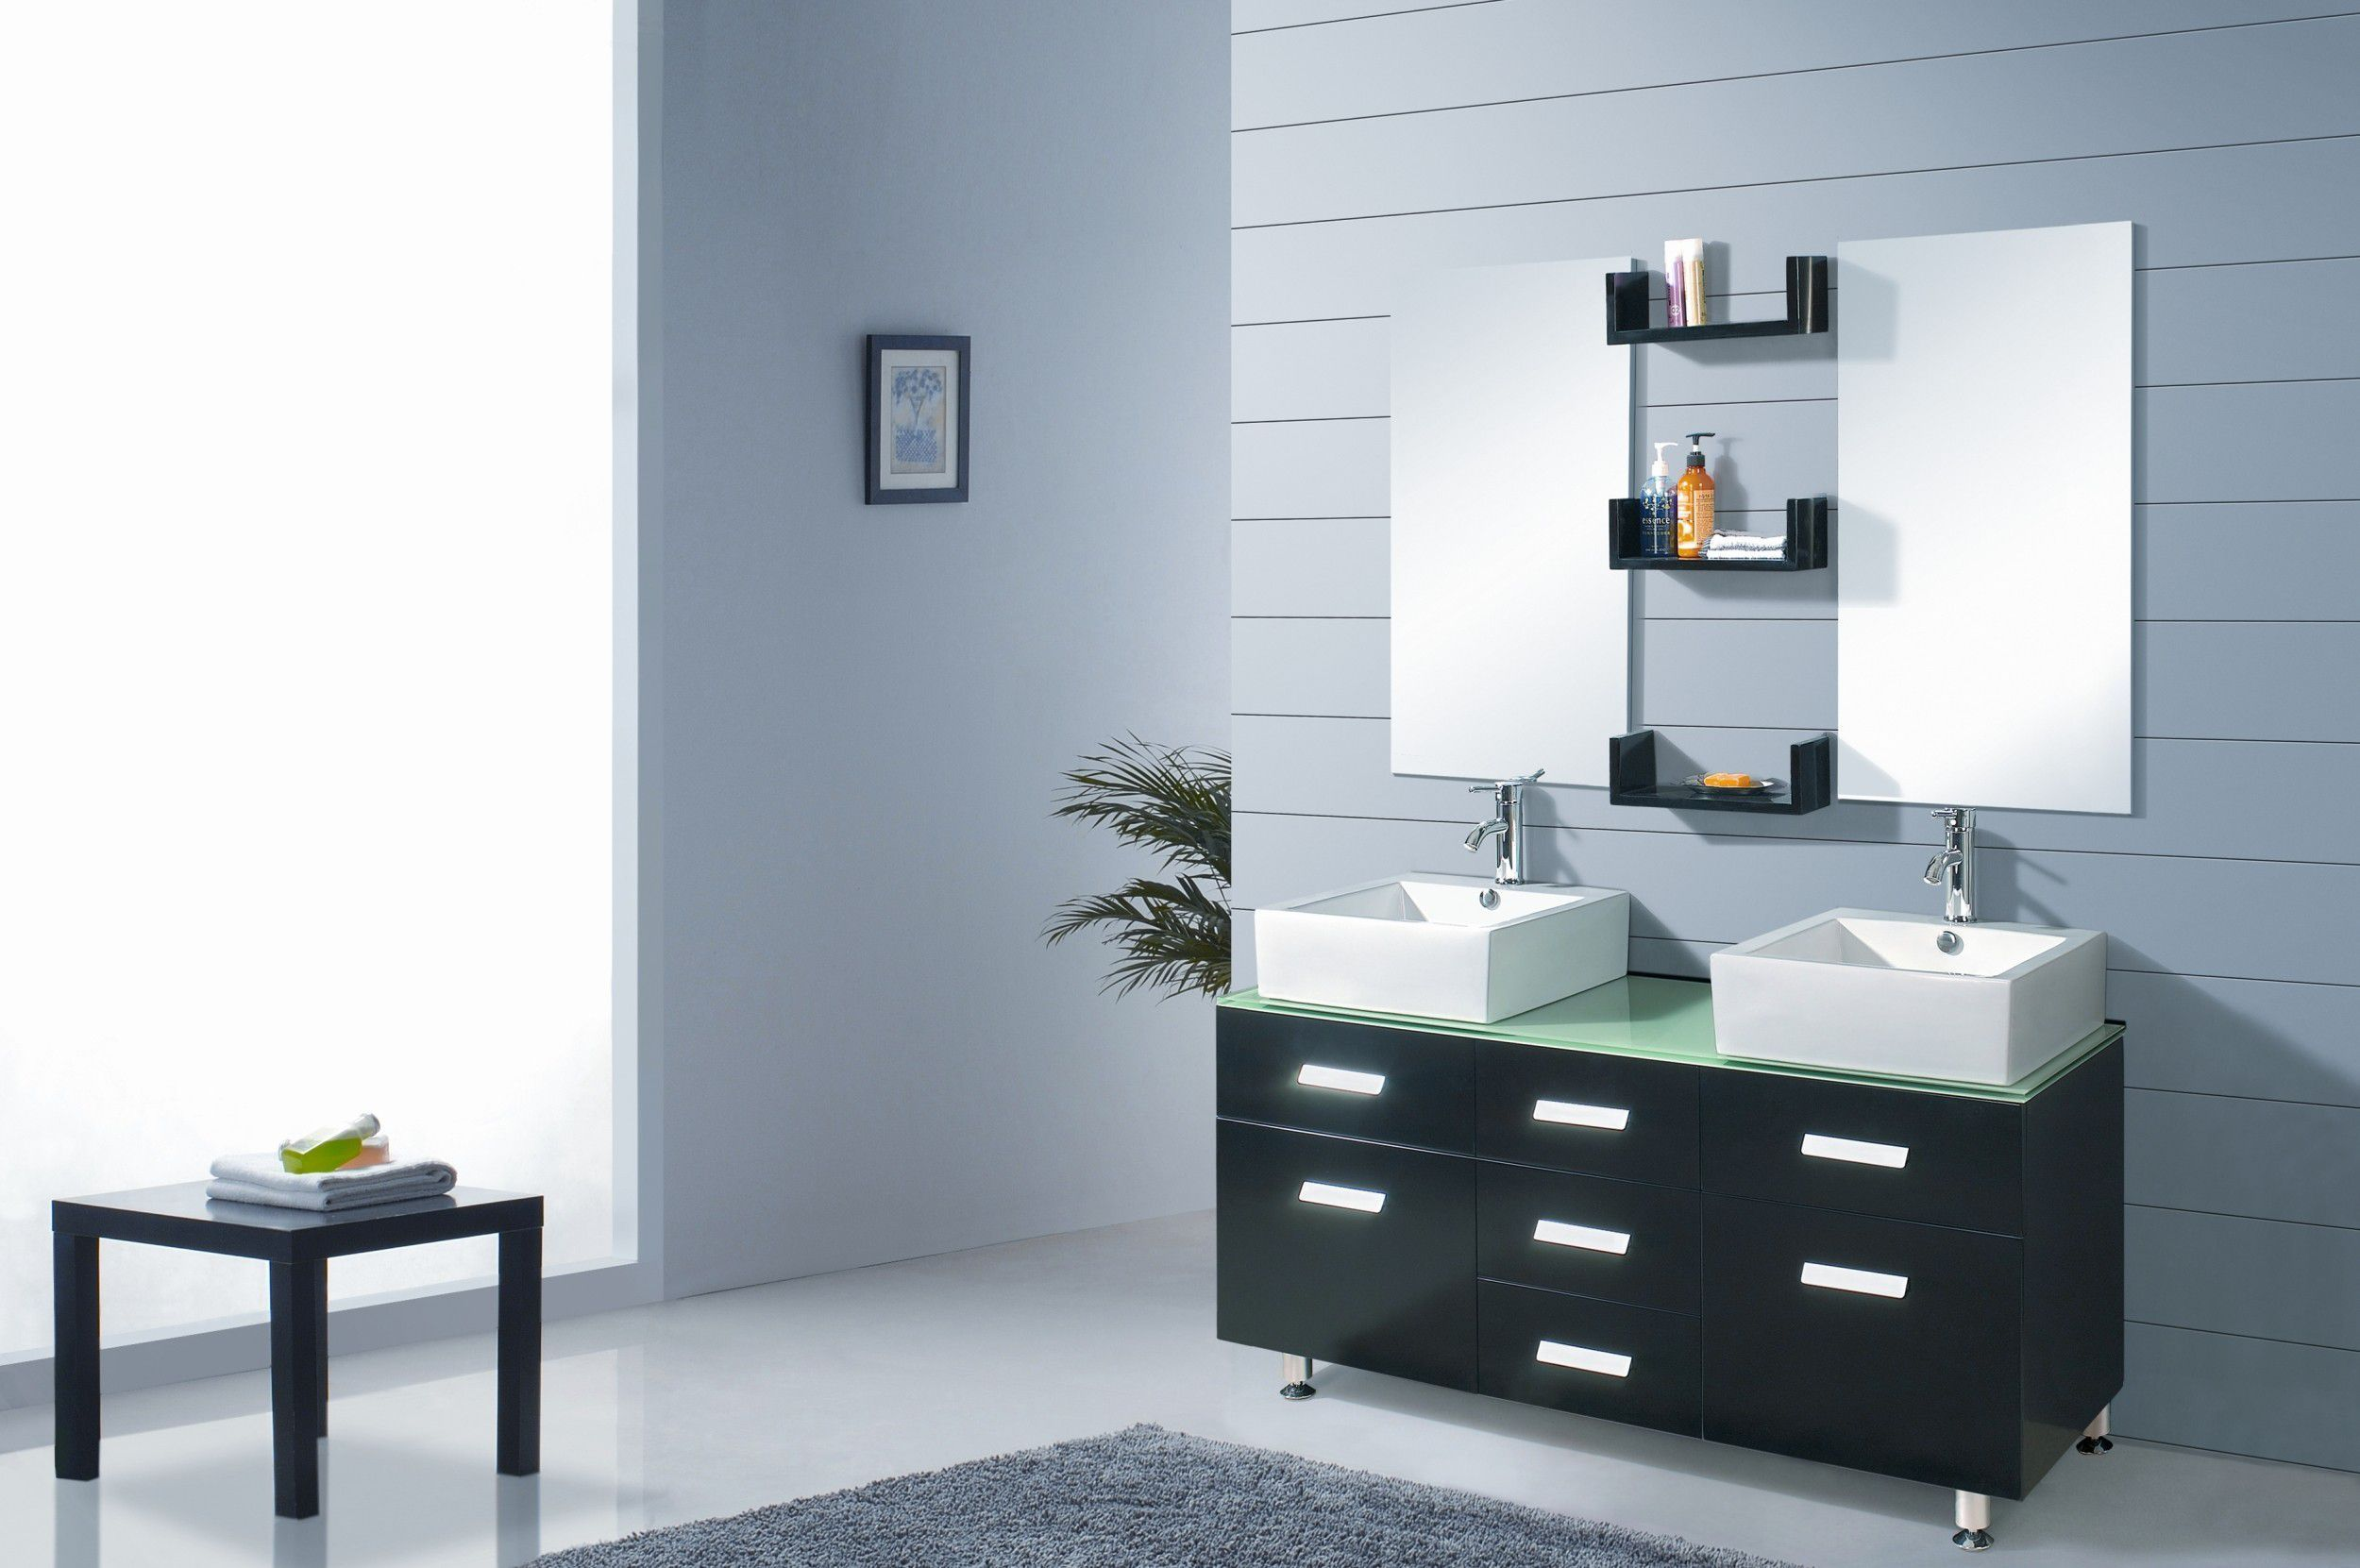 Modern Double Vessel Sink Bathroom Vanity with Mirrors Shelfs ...